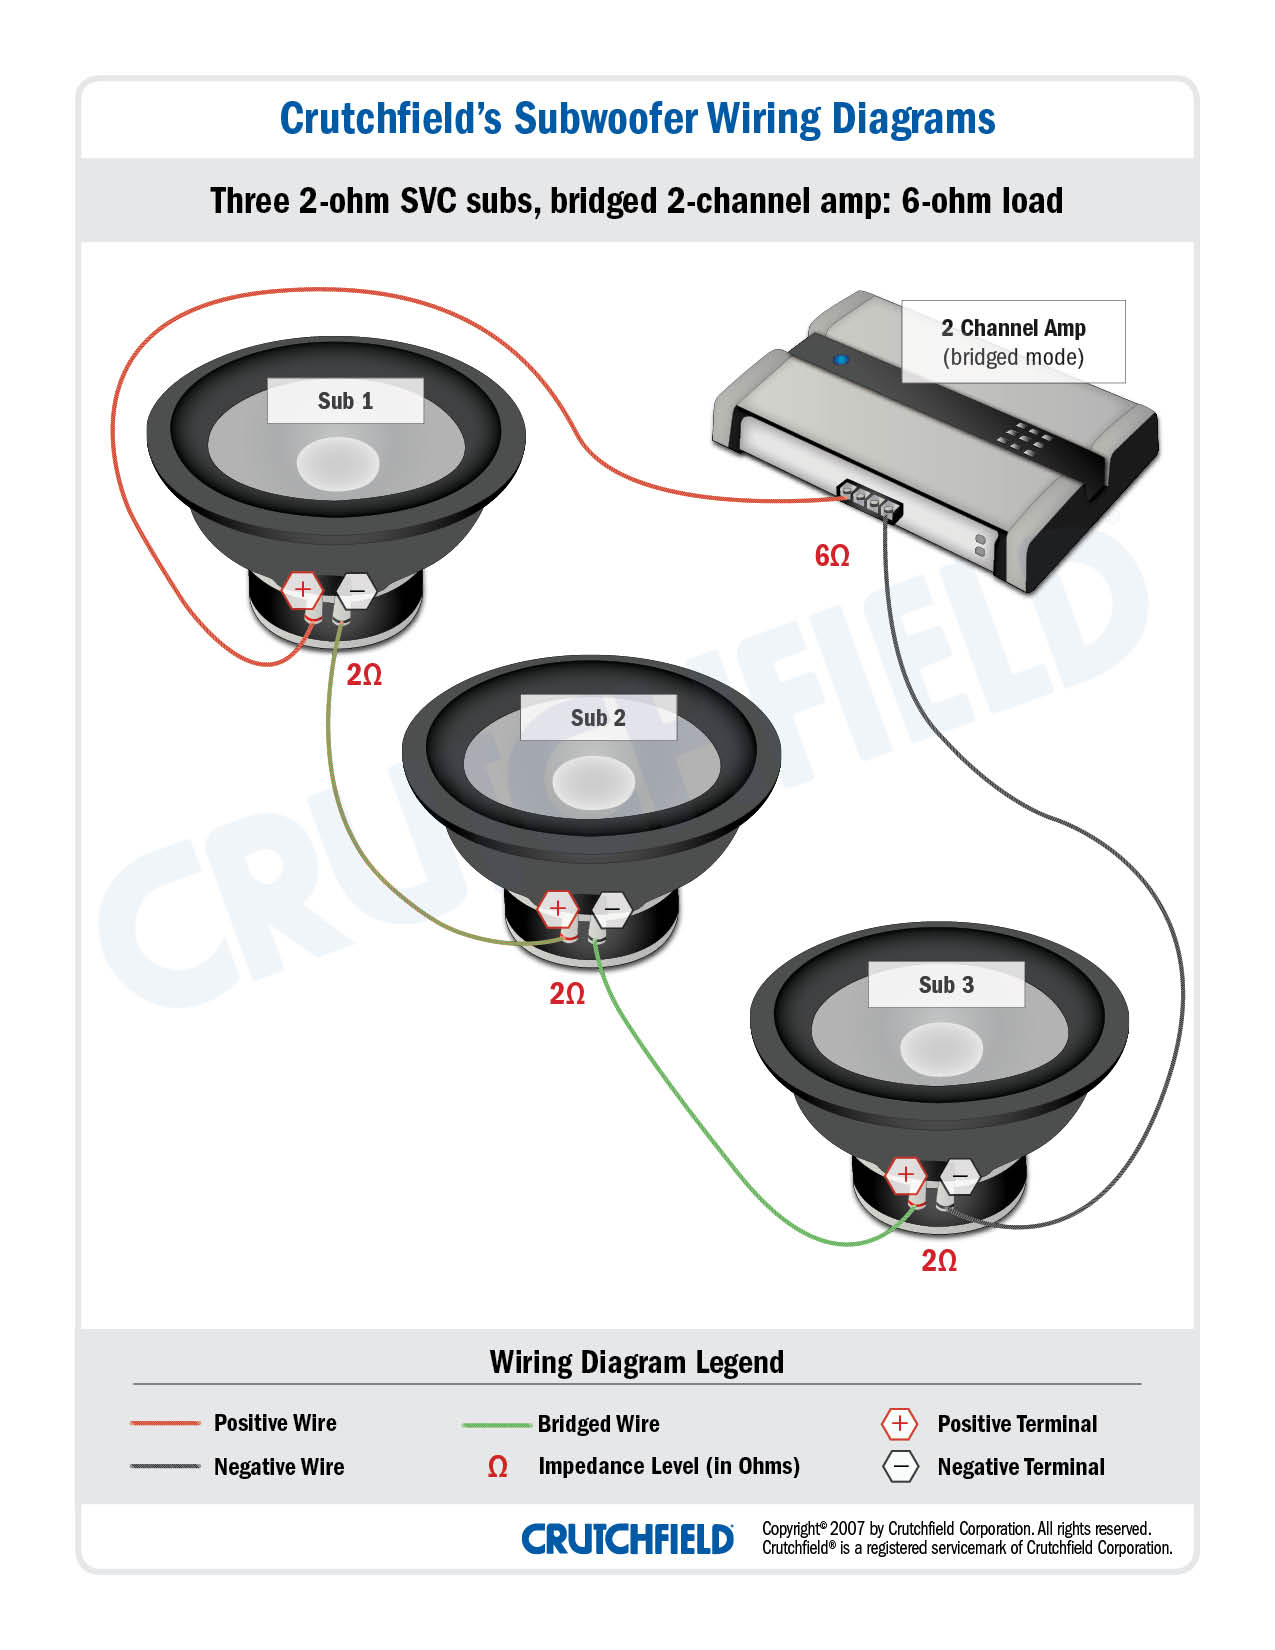 3 SVC 2 ohm 2 ch subwoofer wiring diagrams